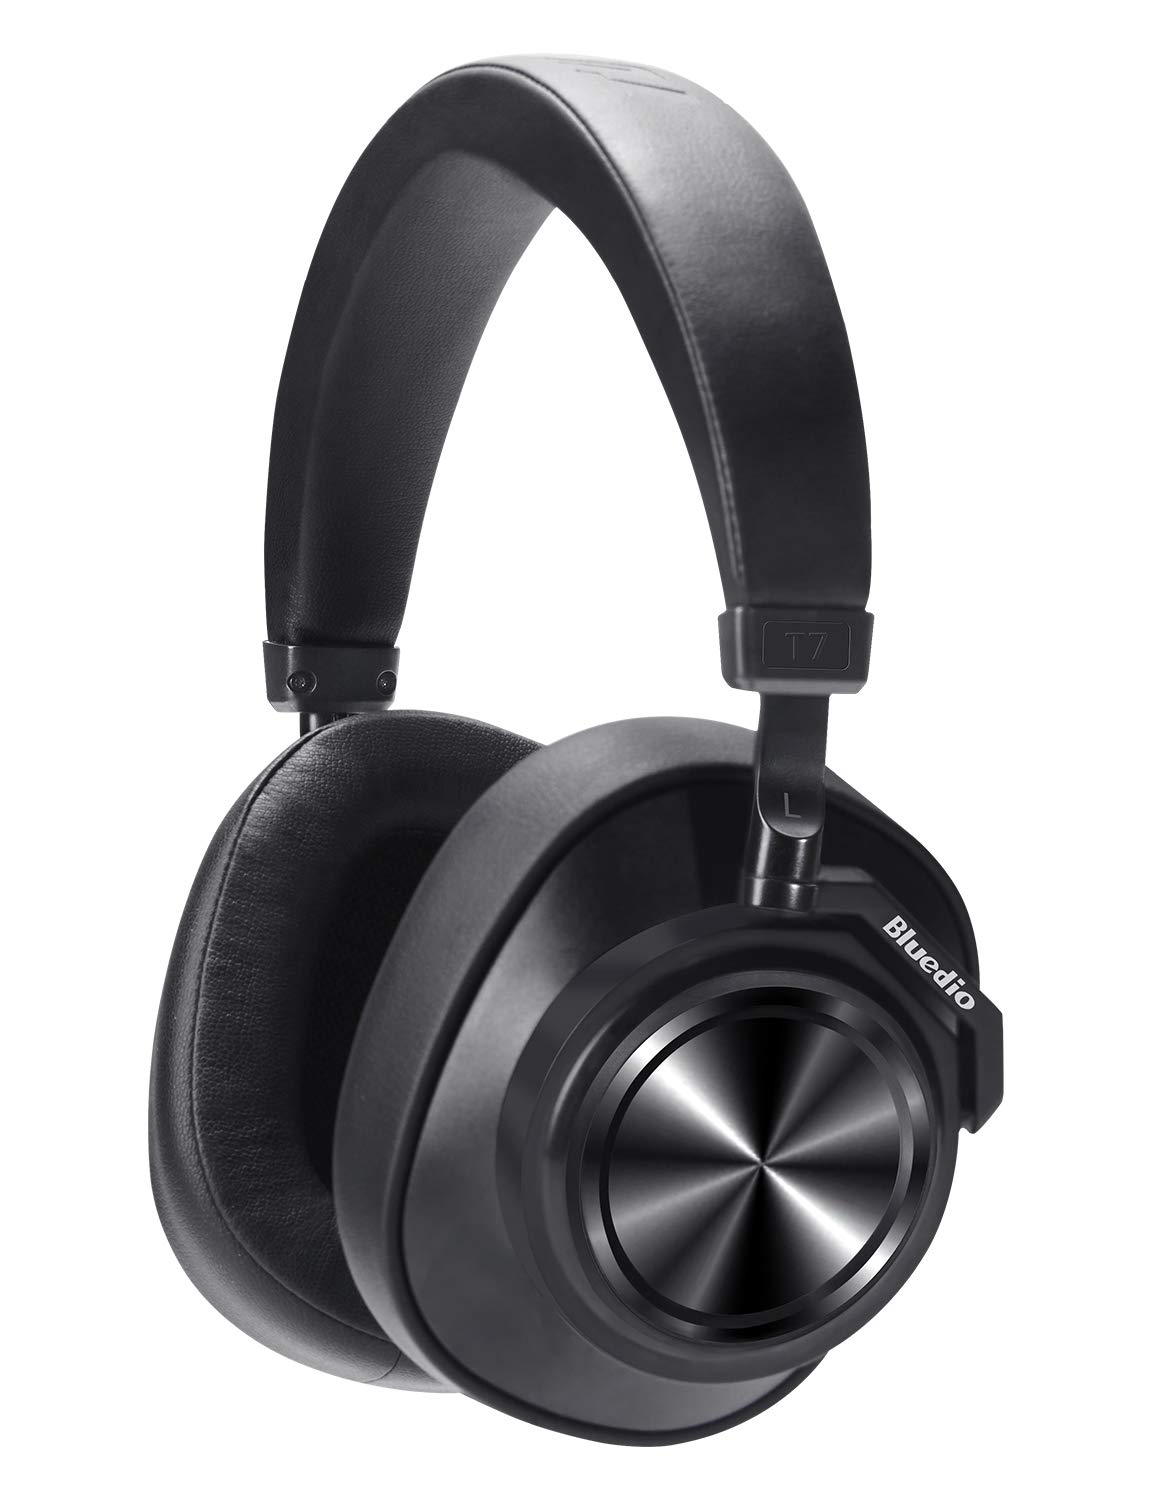 Bluetooth Headphones Bluedio T7 Canceling